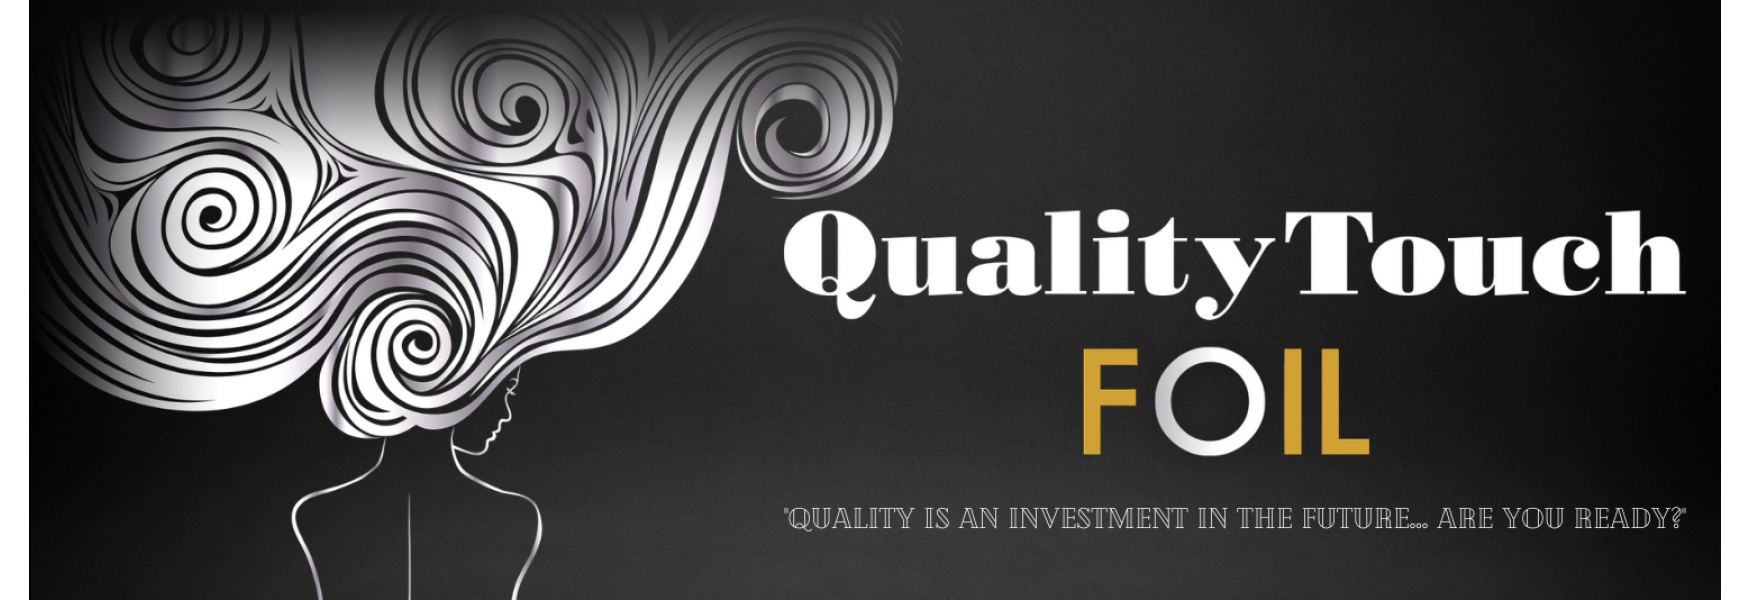 Quality Touch Webpage Banner #1 2021